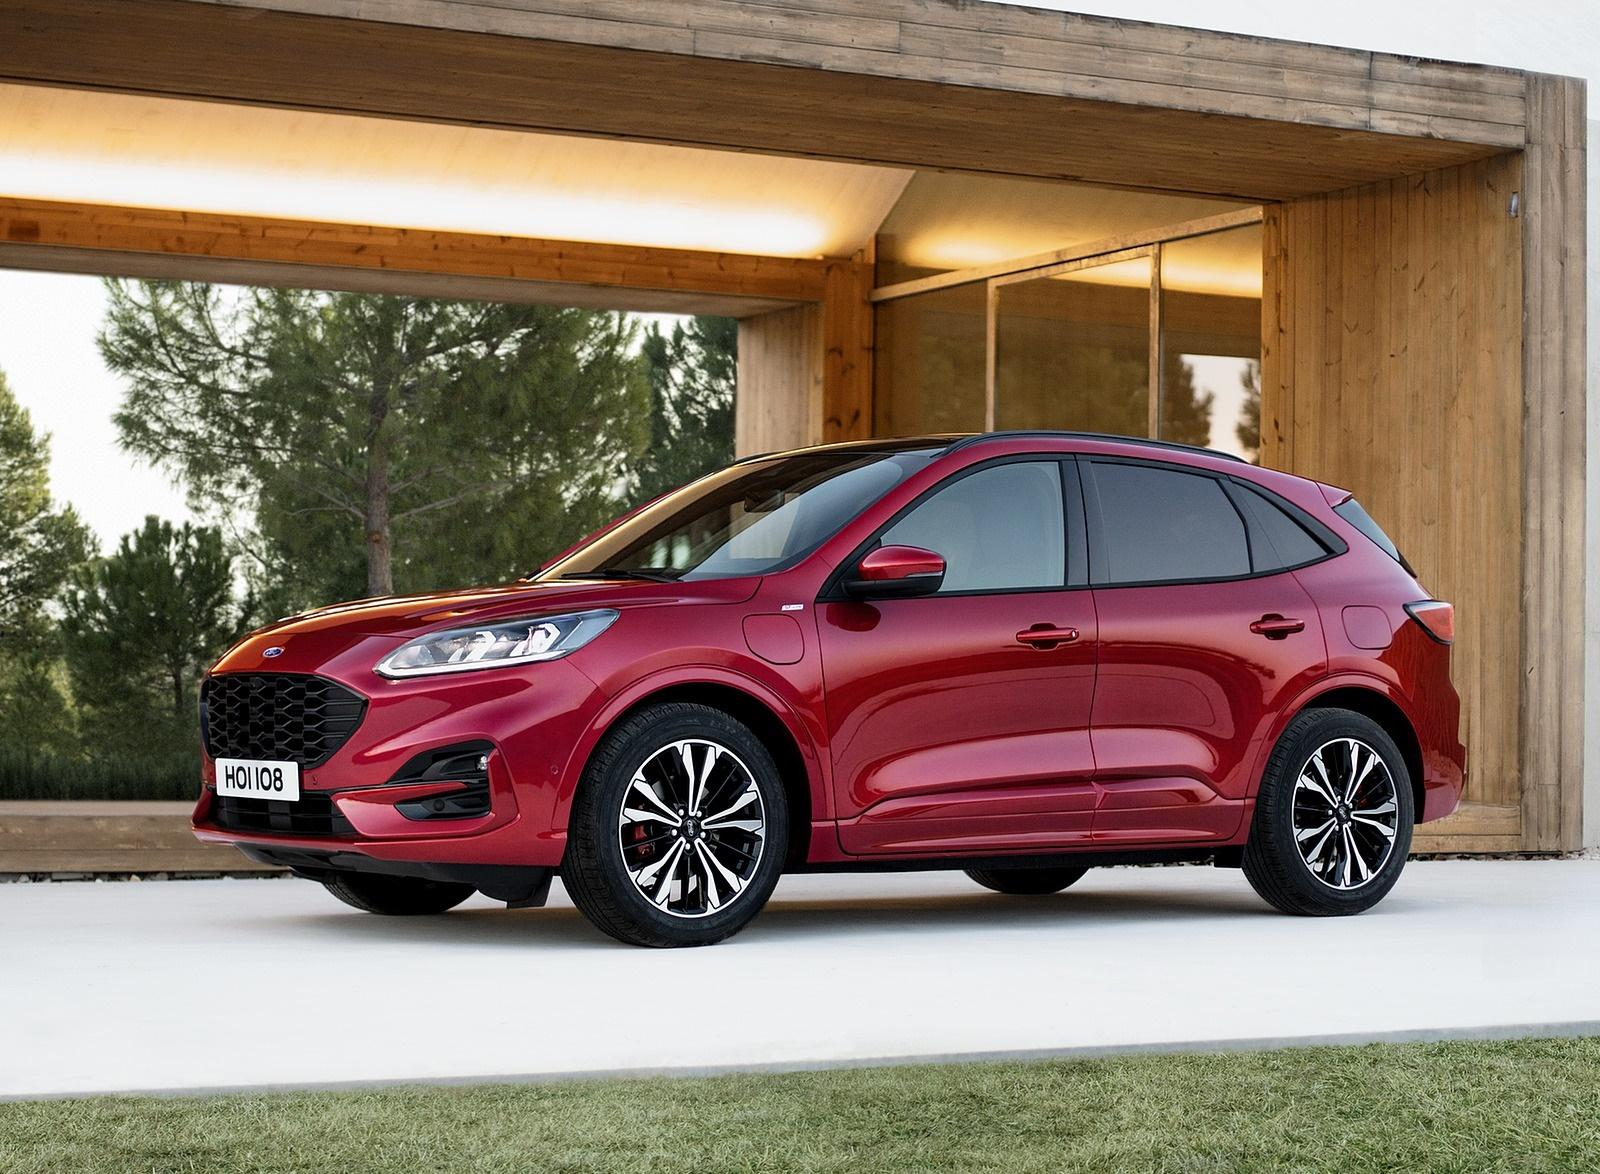 2019 Ford Kuga And Kuga Hybrid Wallpapers (33+ HD Images) - NewCarCars